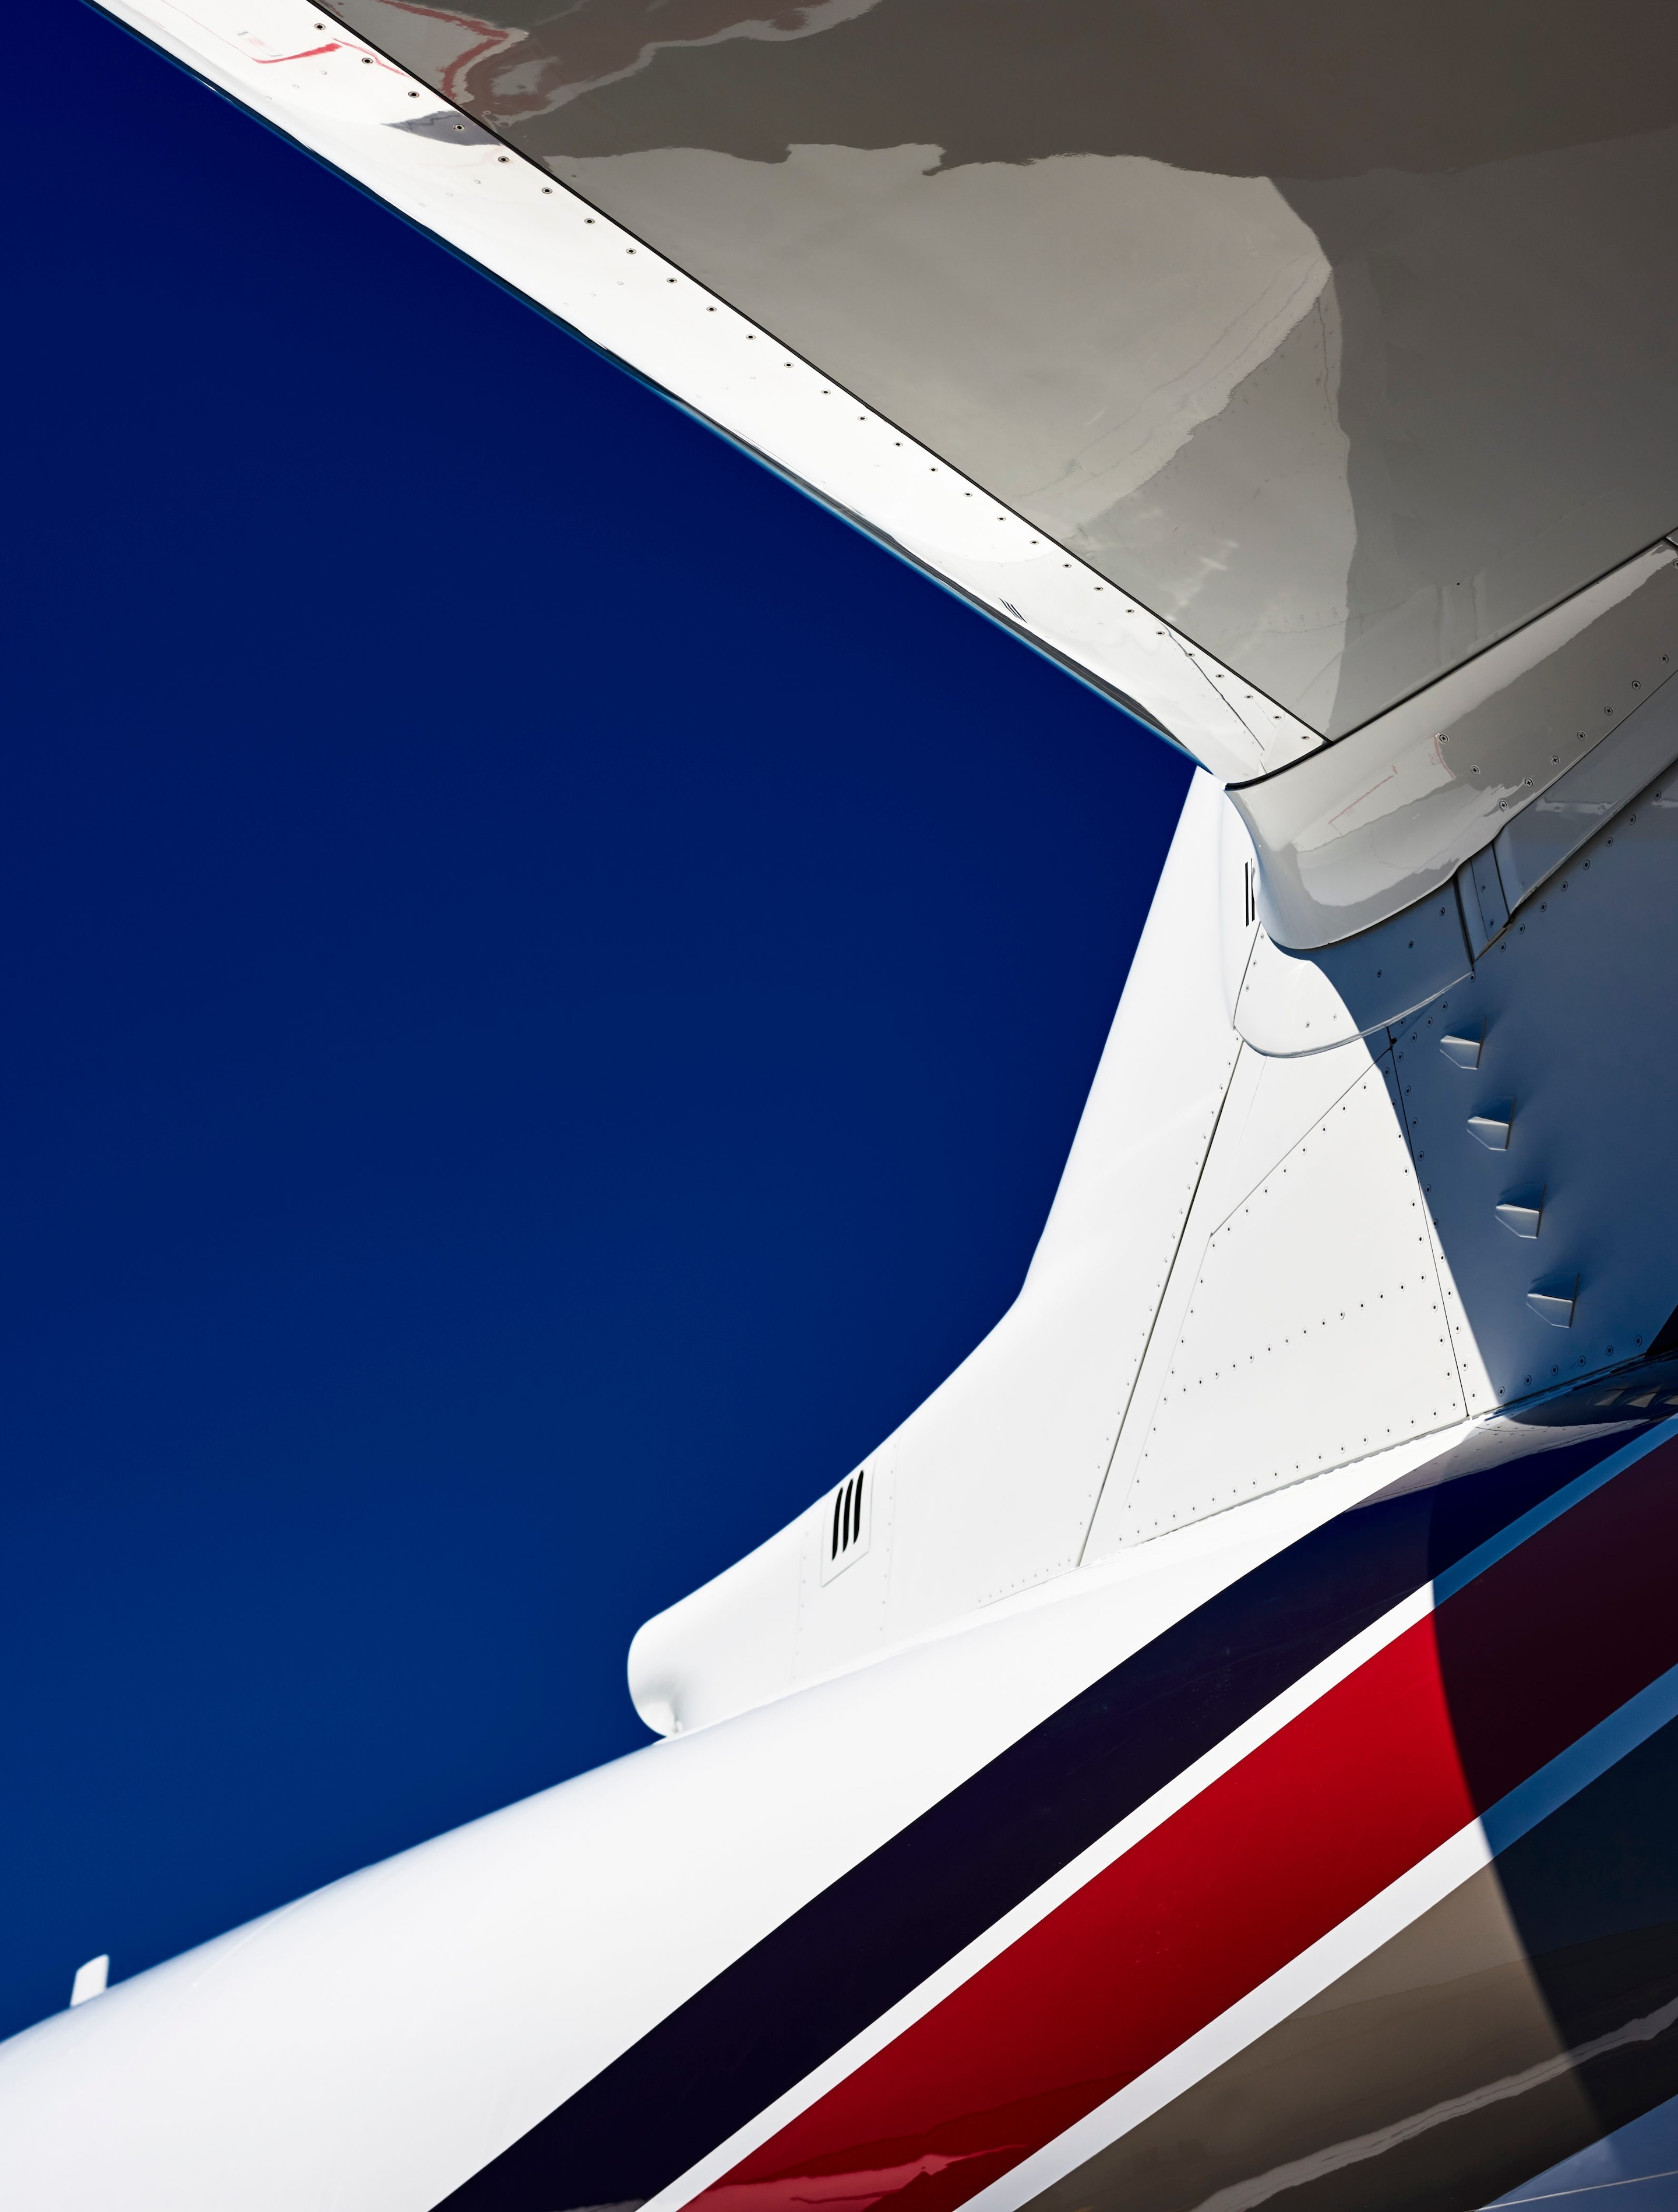 Flights of fancy: inside NetJets. the private aviation giant soaring above the competition